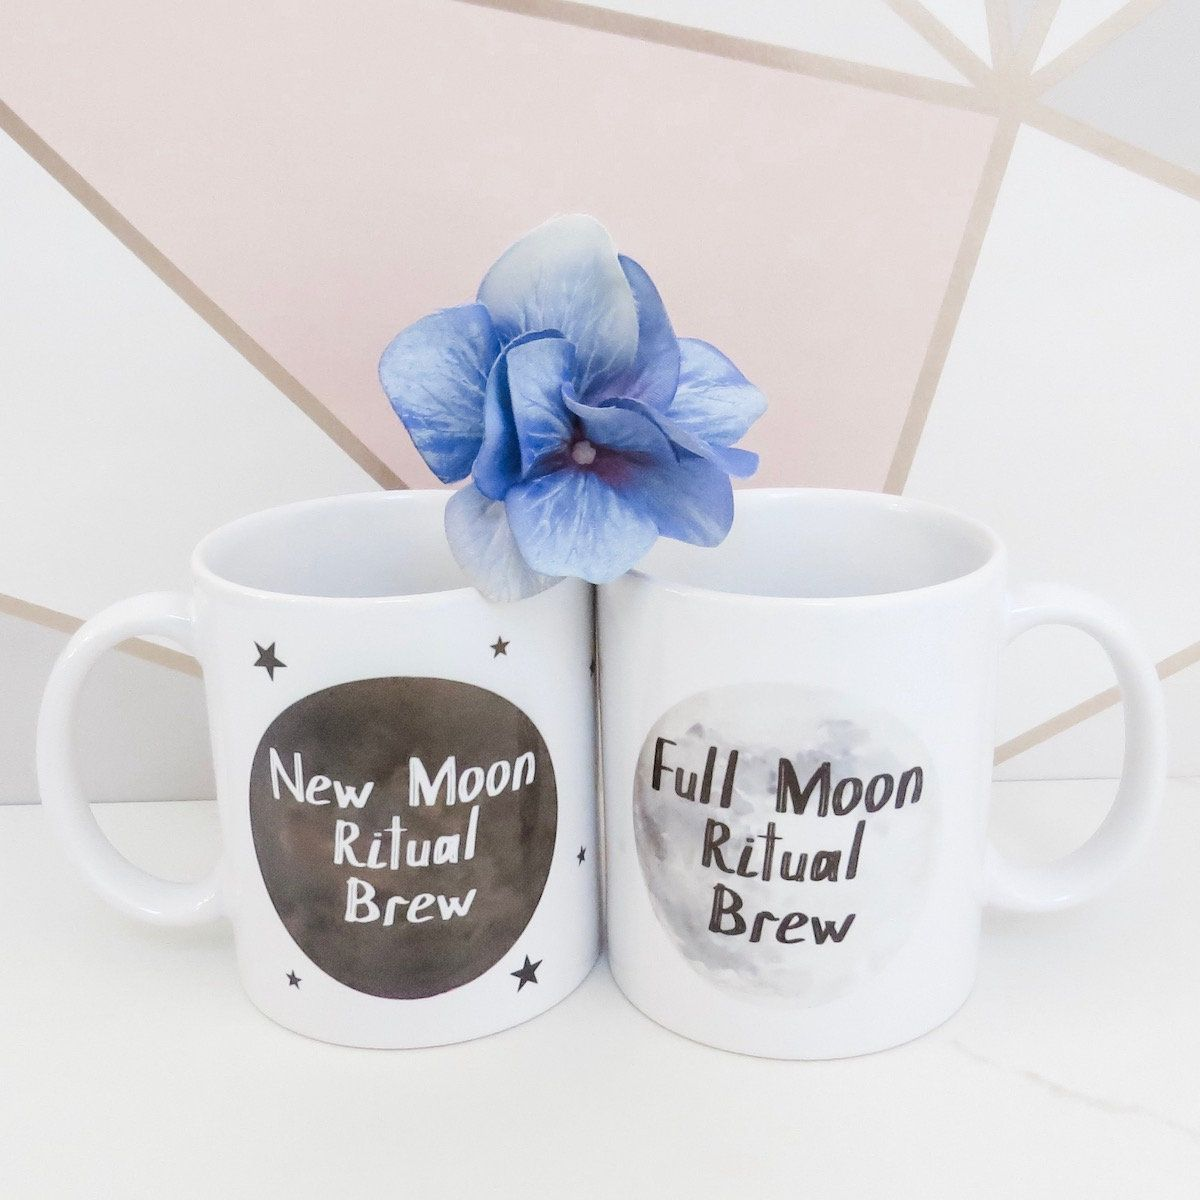 Full Moon / New Moon Ritual Mug Set #newmoonritual This set of 2 Full Moon / New Moon Ritual mugs make a lovely gift for a friend or yourself. They make a wonderful addition to your New Moon and Full Moon self care ritual/routine so, relax, sip your tea and set some beautiful intentions under the new and full moons.  Printed using Eco Friendly Vegan inks. #newmoonritual Full Moon / New Moon Ritual Mug Set #newmoonritual This set of 2 Full Moon / New Moon Ritual mugs make a lovely gift for a frie #newmoonritual